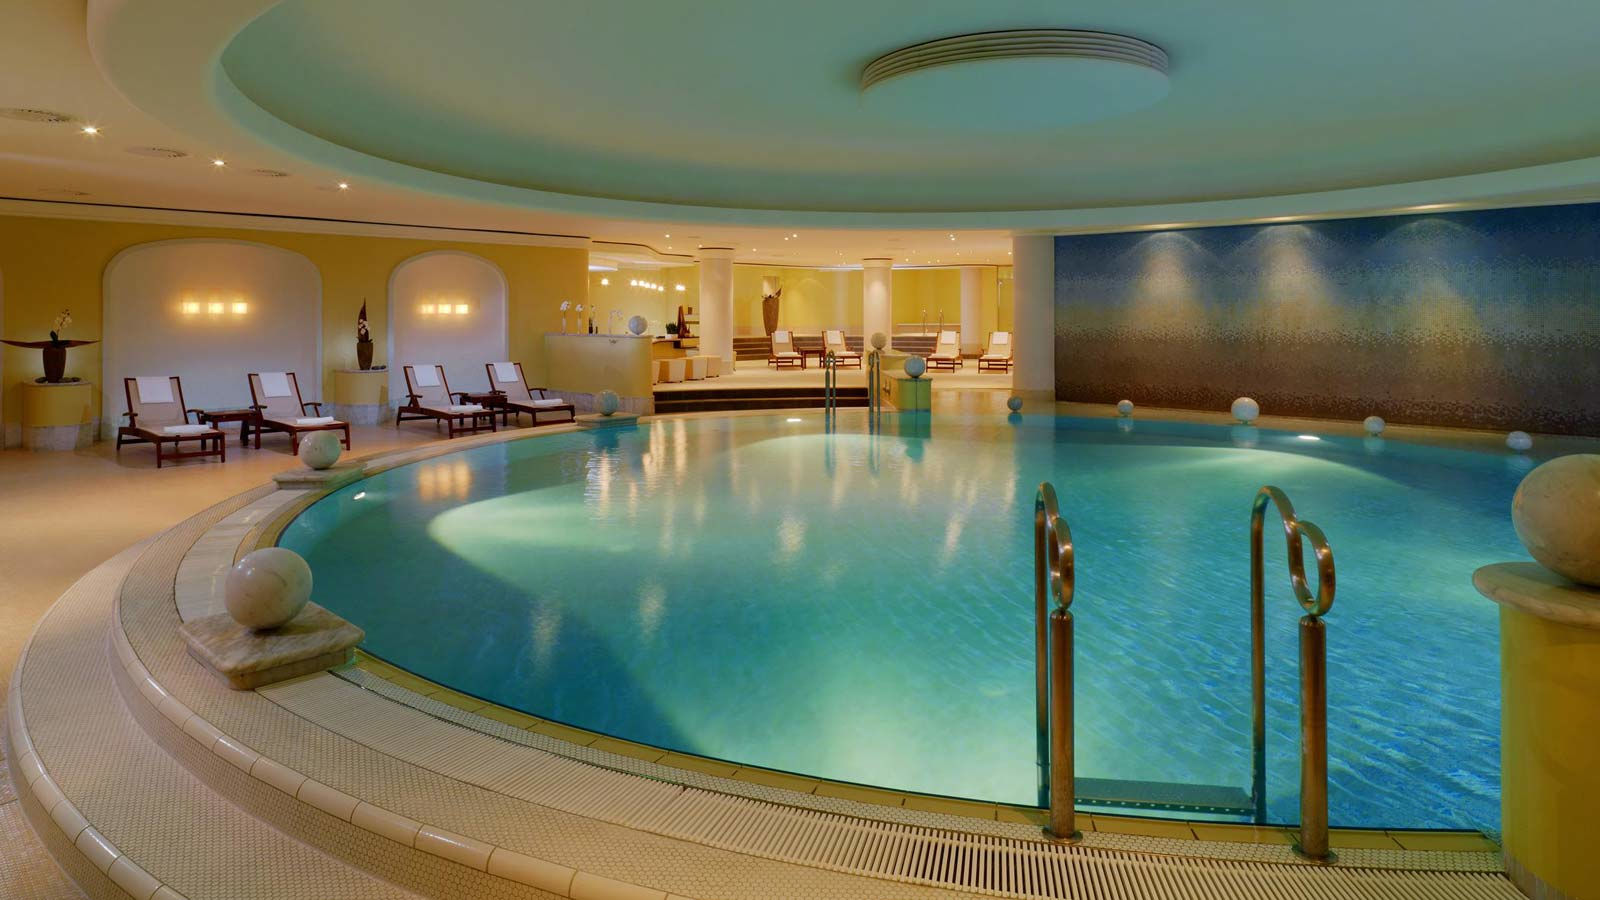 Westin Spa im The Westin Grand - Ihrem Wellnesshotel in Berlin